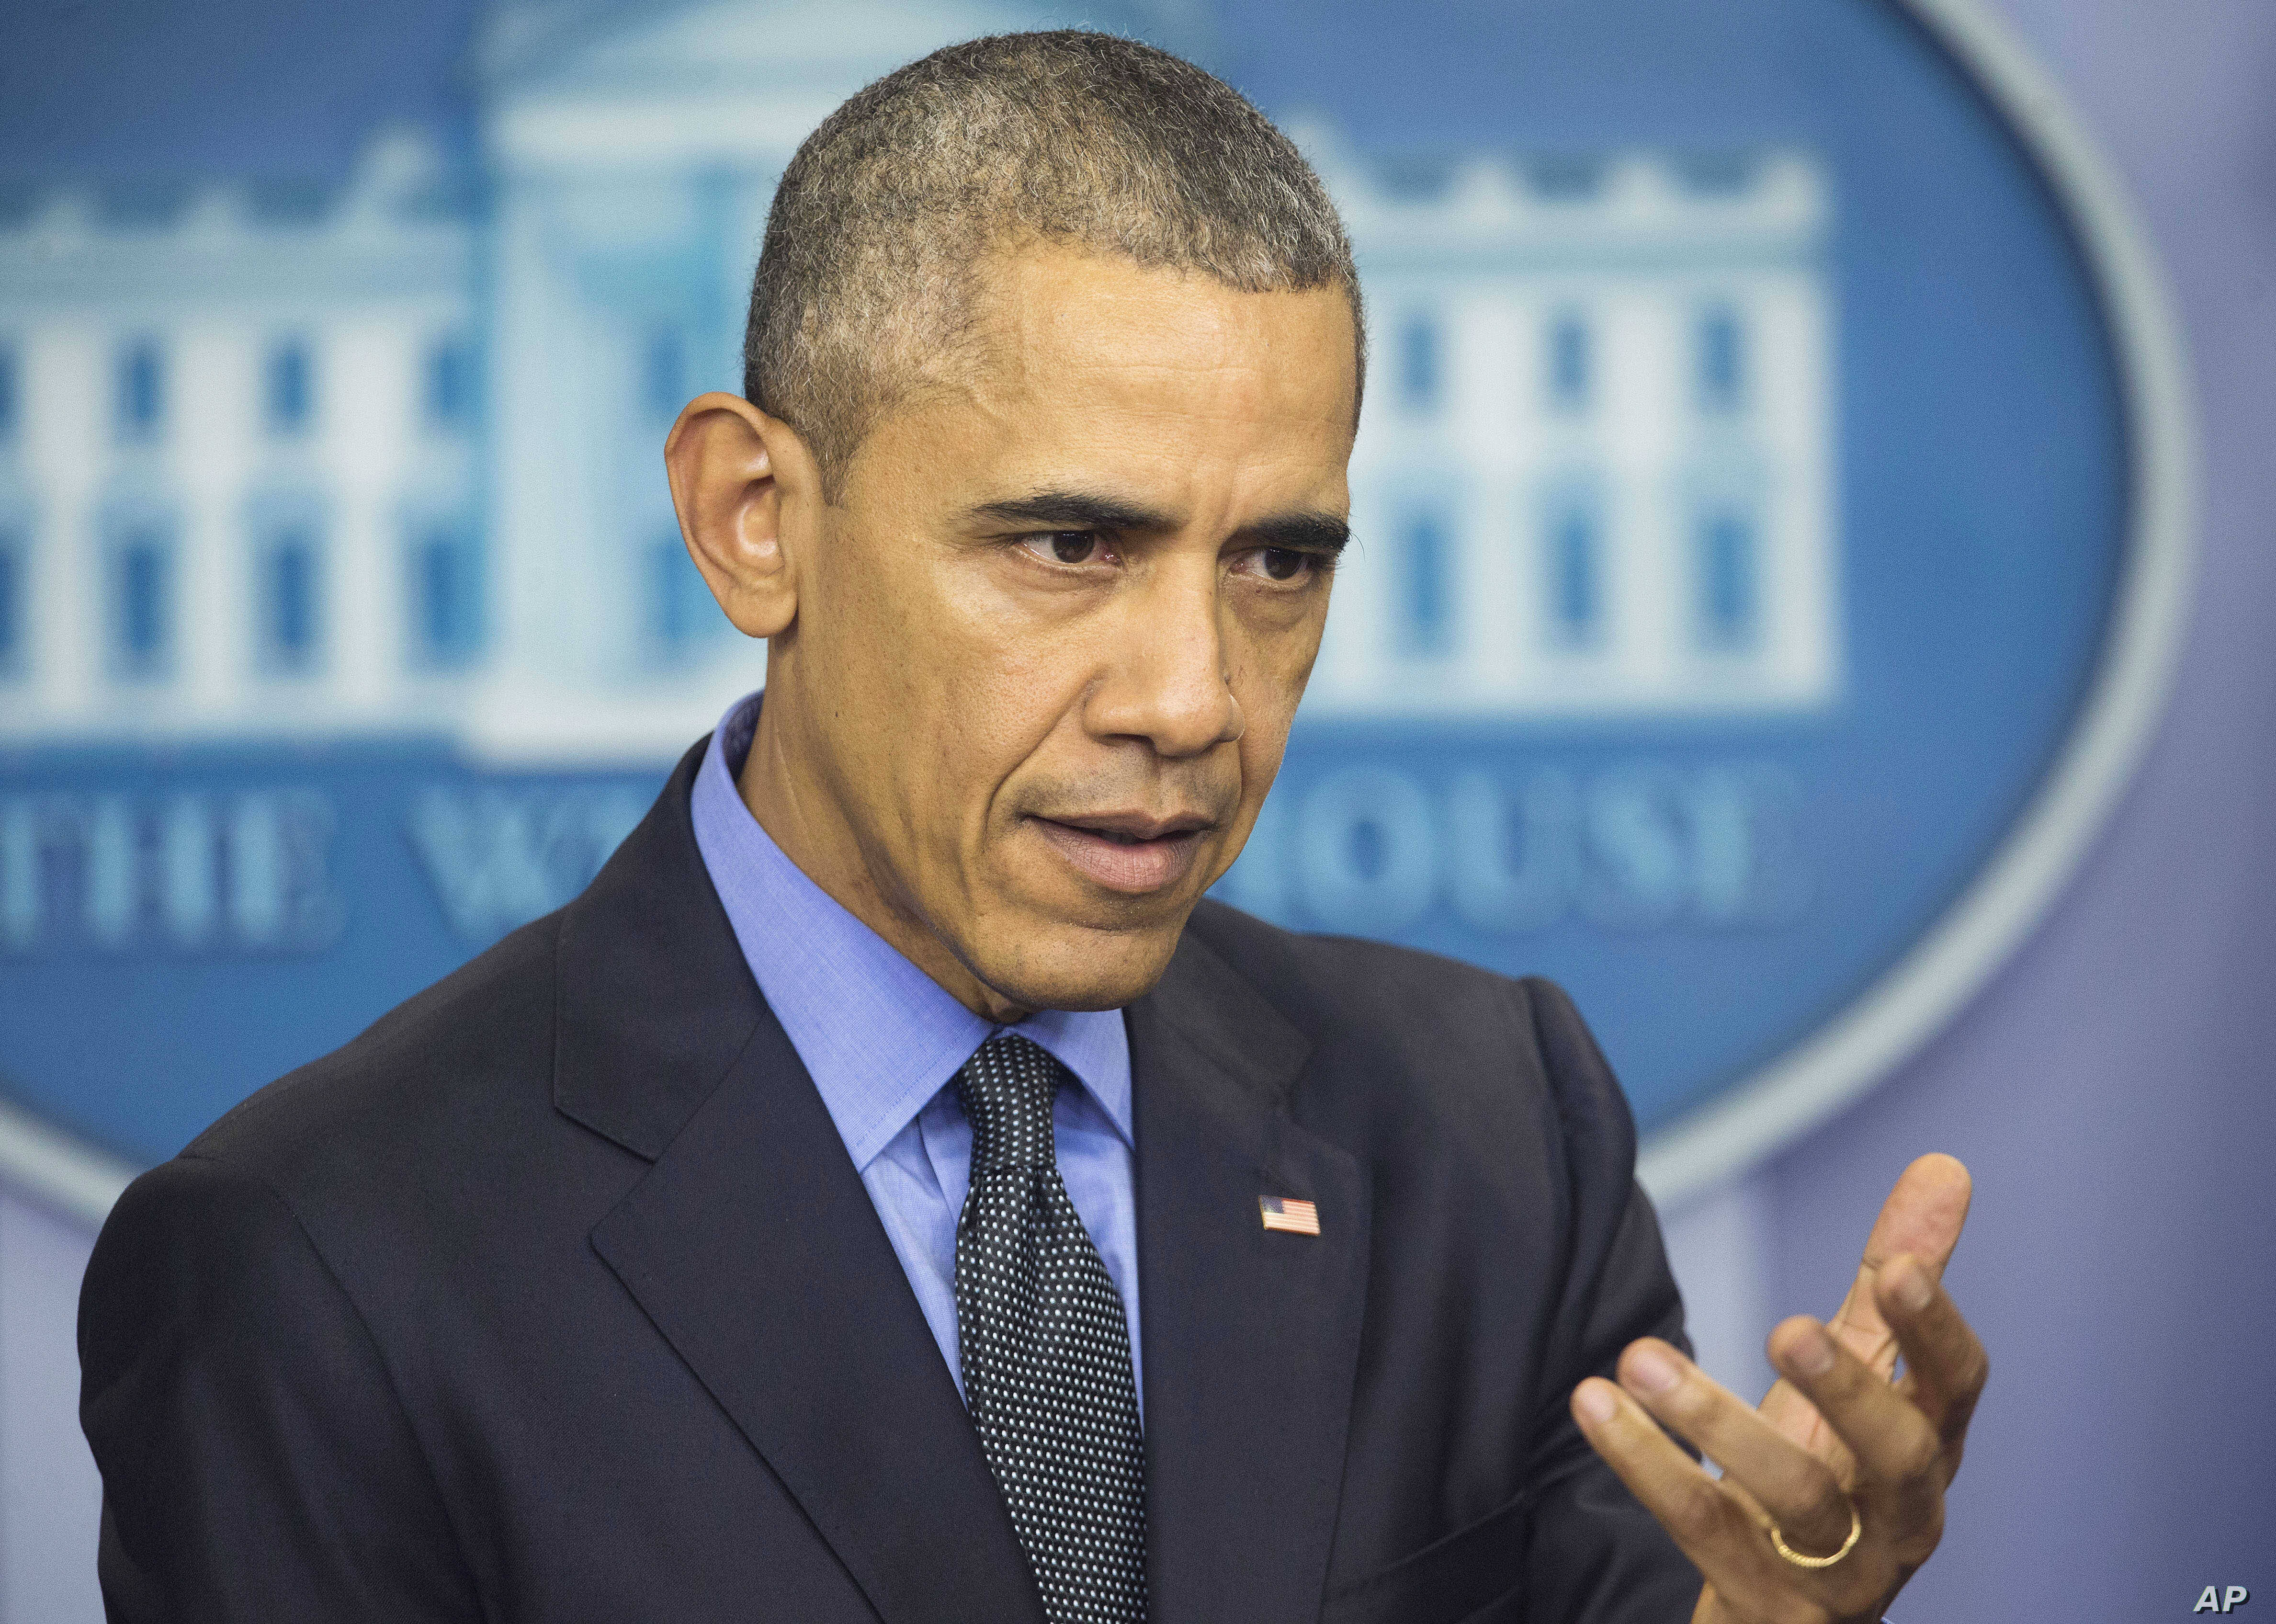 President Barack Obama speaks during a news conference in the White House Brady Press Briefing Room in Washington, Dec. 18, 2015.